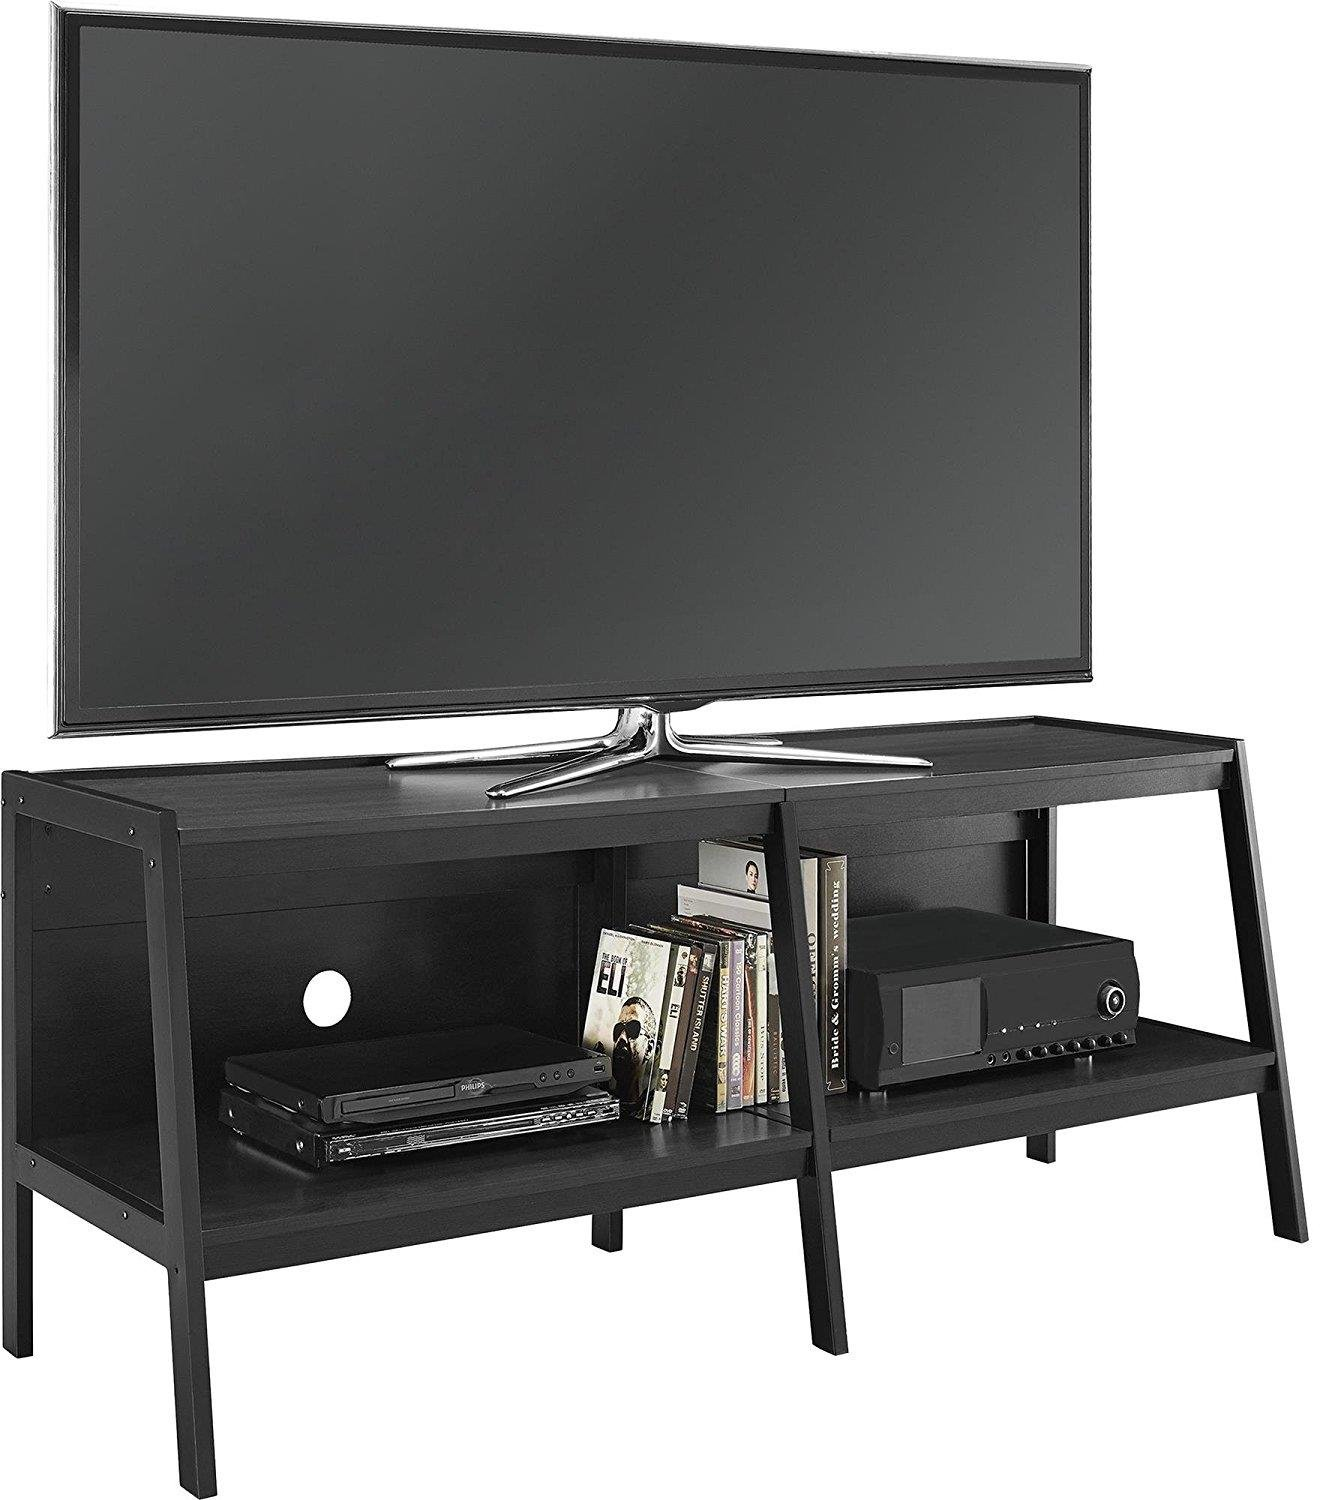 Ameriwood Home Lawrence 60'' Ladder TV Stand, Black by Altra Furniture (Image #3)